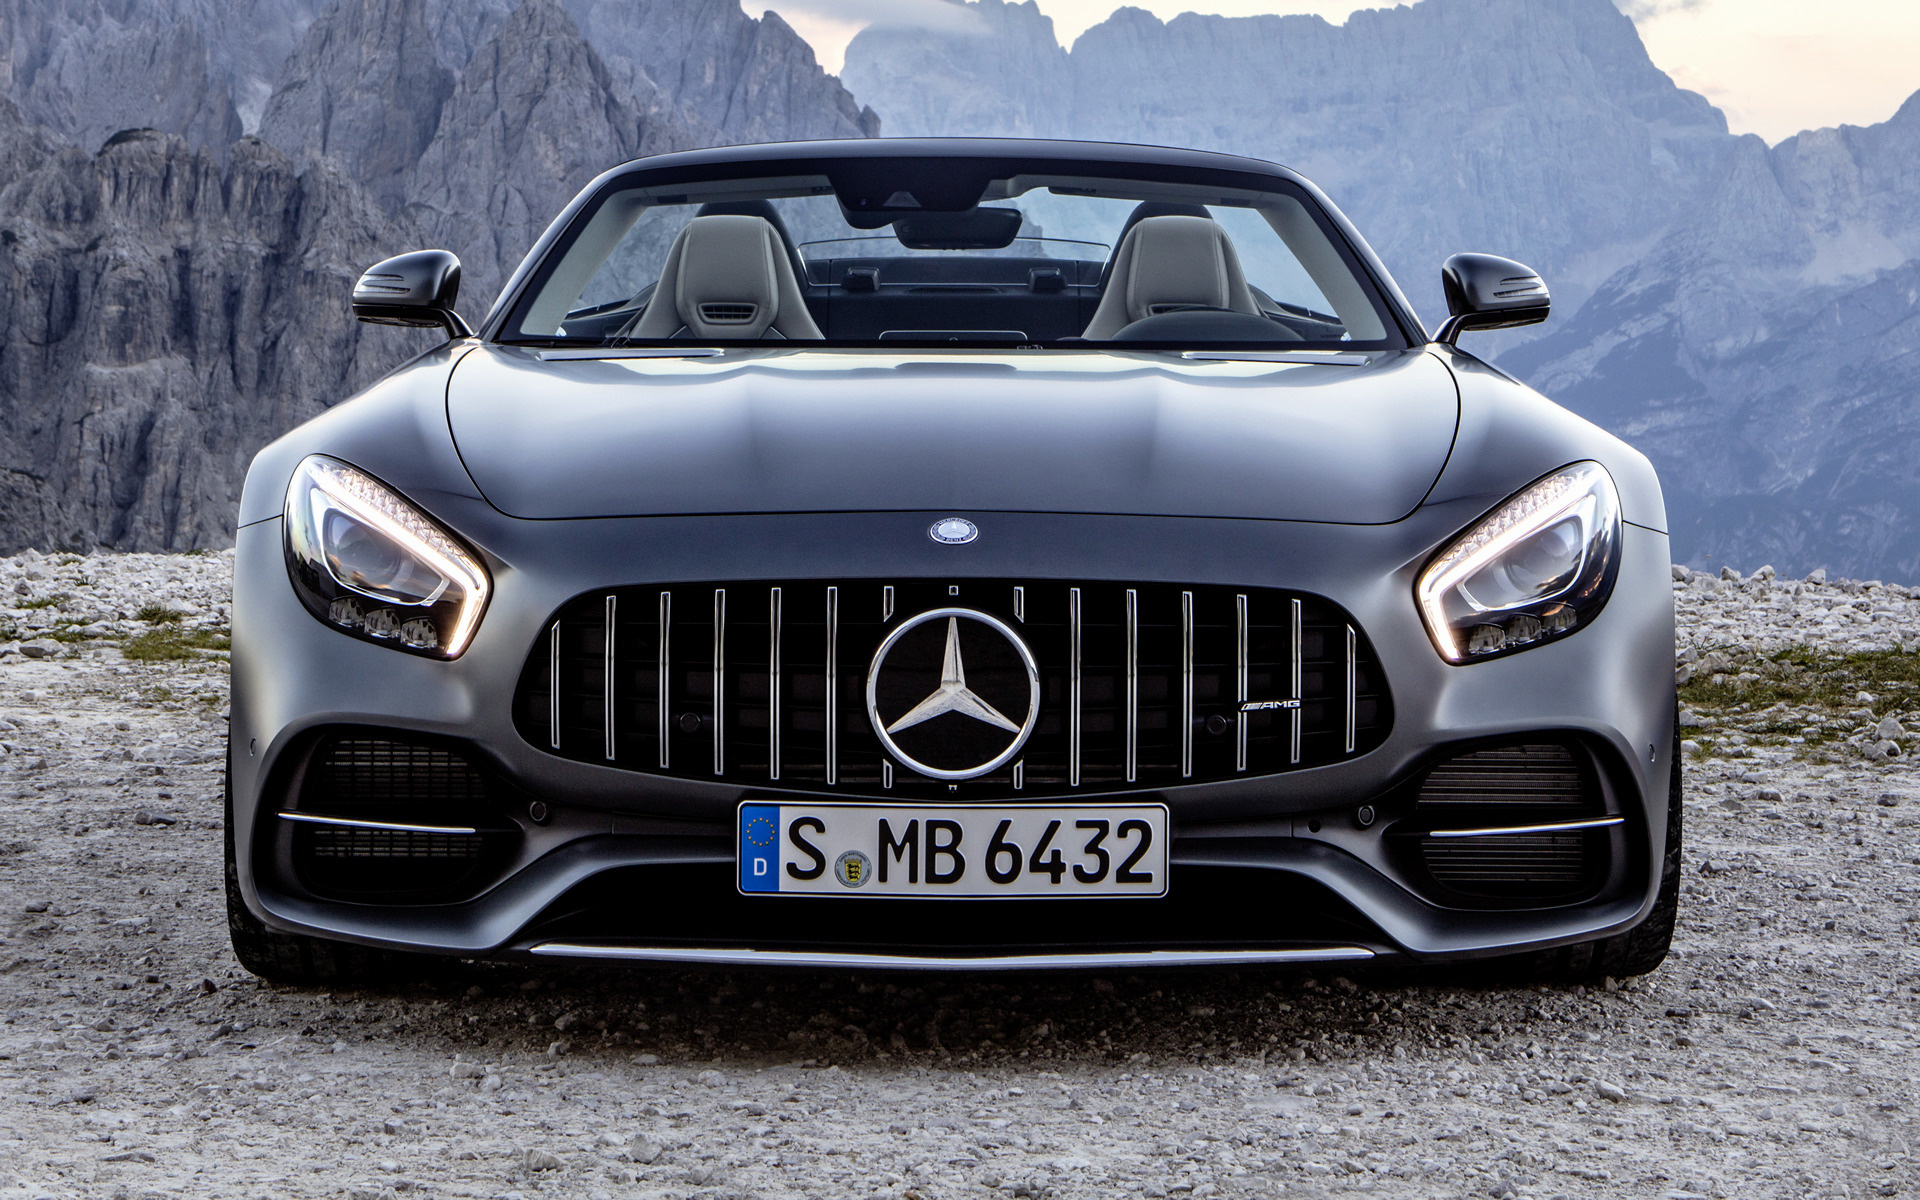 2016 Dodge Ram >> 2016 Mercedes-AMG GT C Roadster - Wallpapers and HD Images | Car Pixel